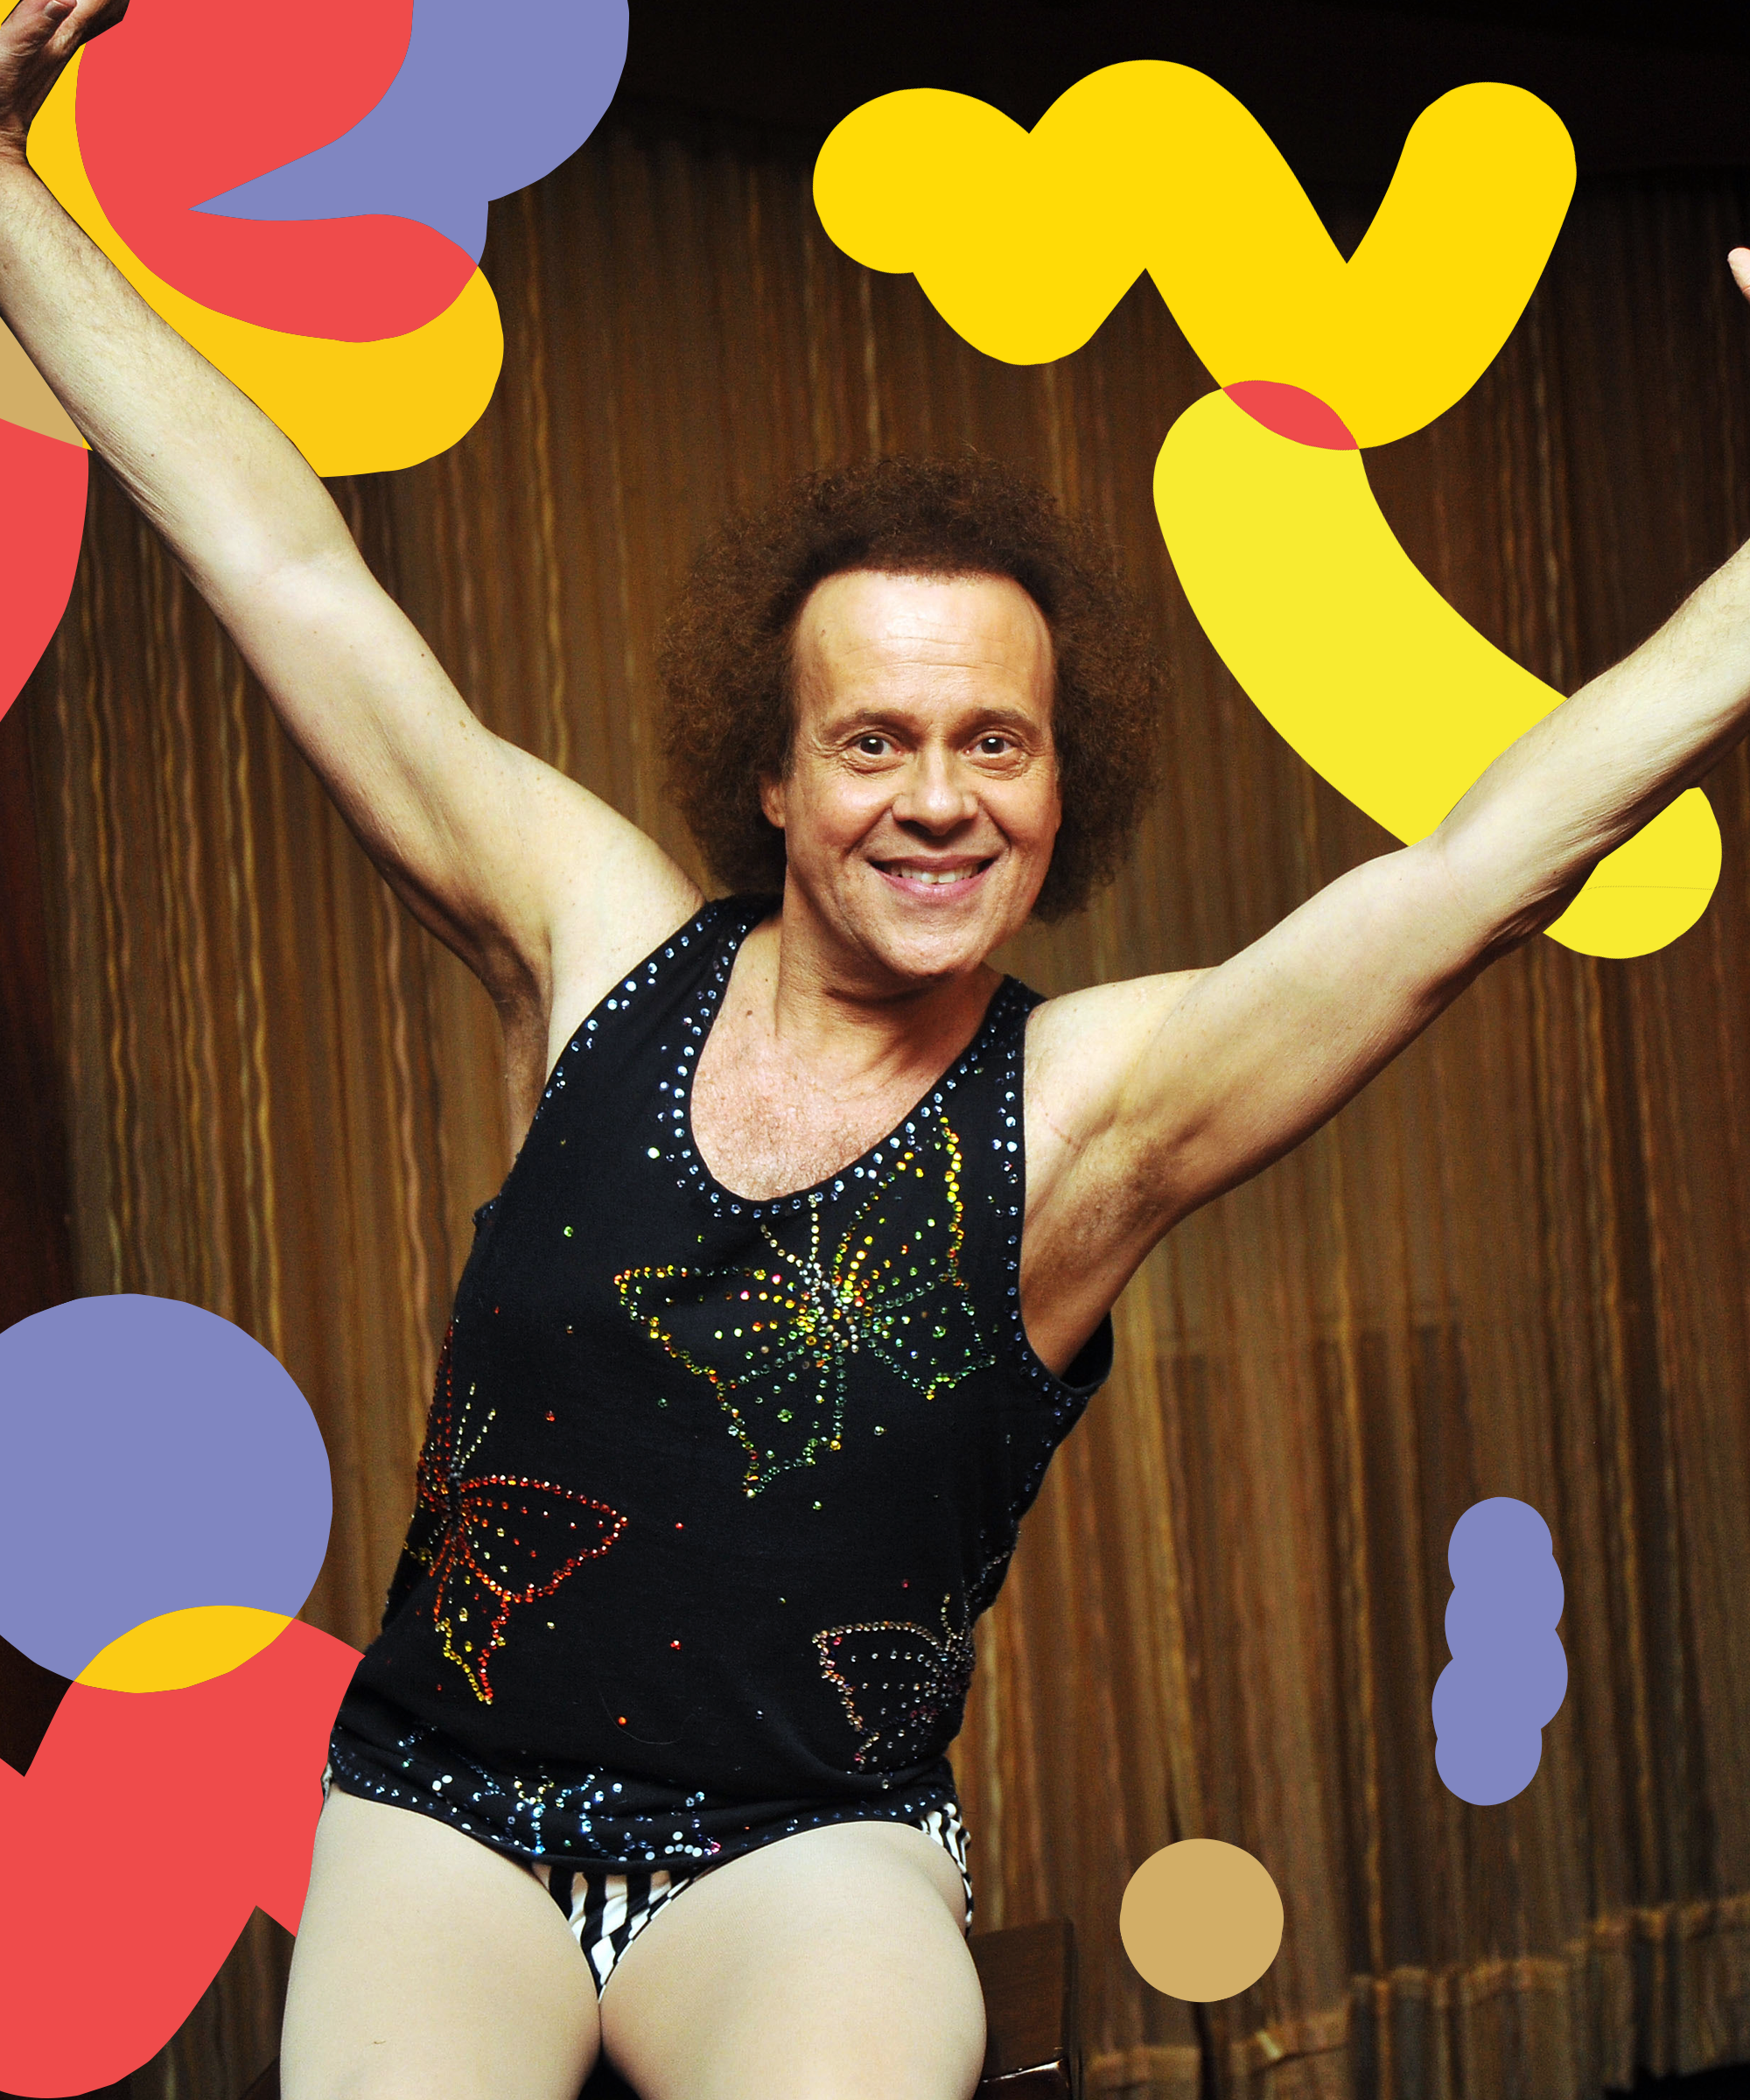 Richard Simmons is 'perfectly fine,' police sources say